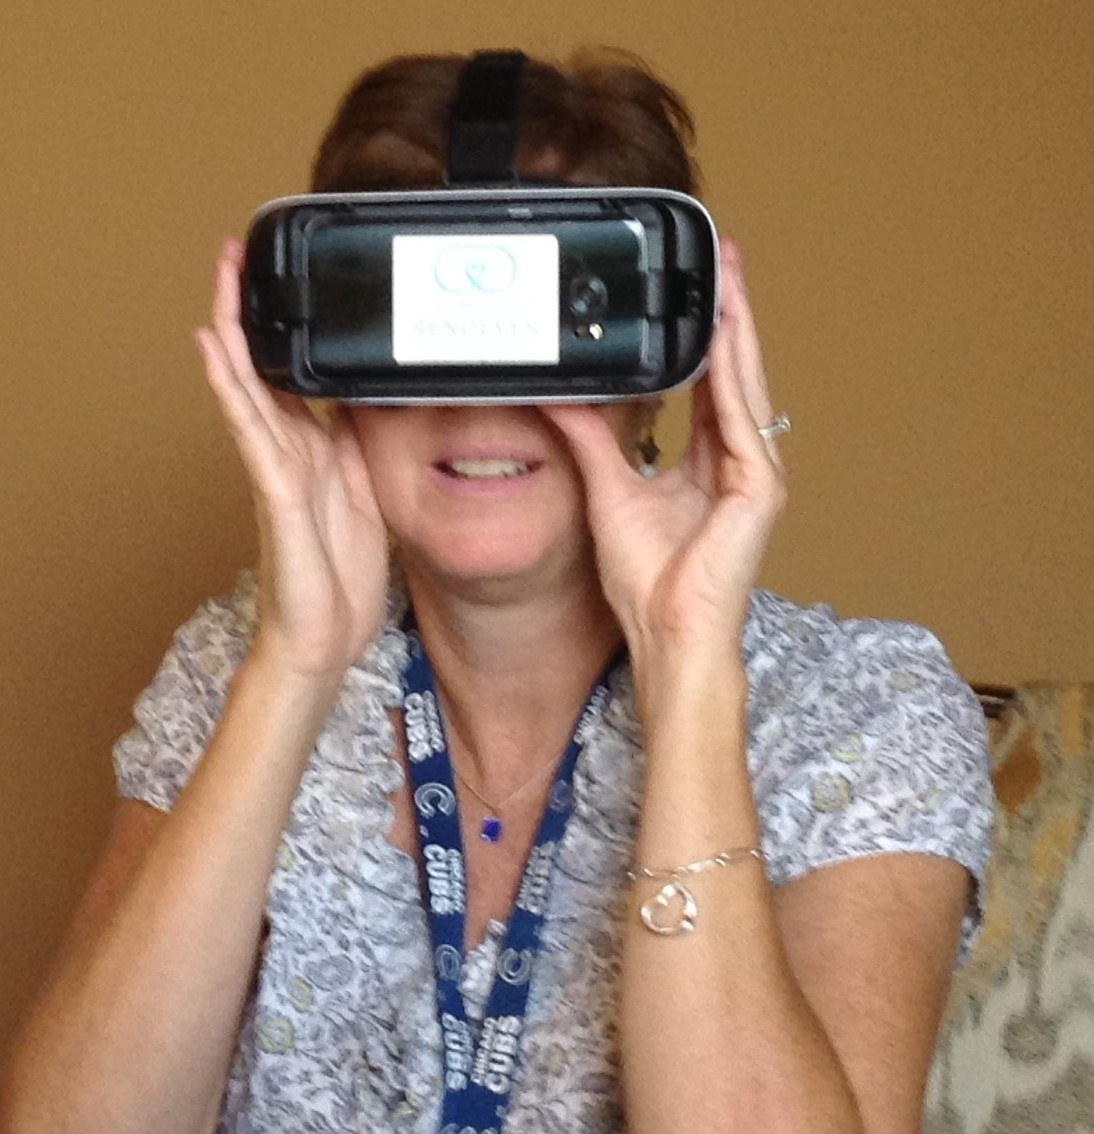 Royal Oaks residents swim with dolphins, travel with elephants, and visit Wrigley Field - through Virtual Reality